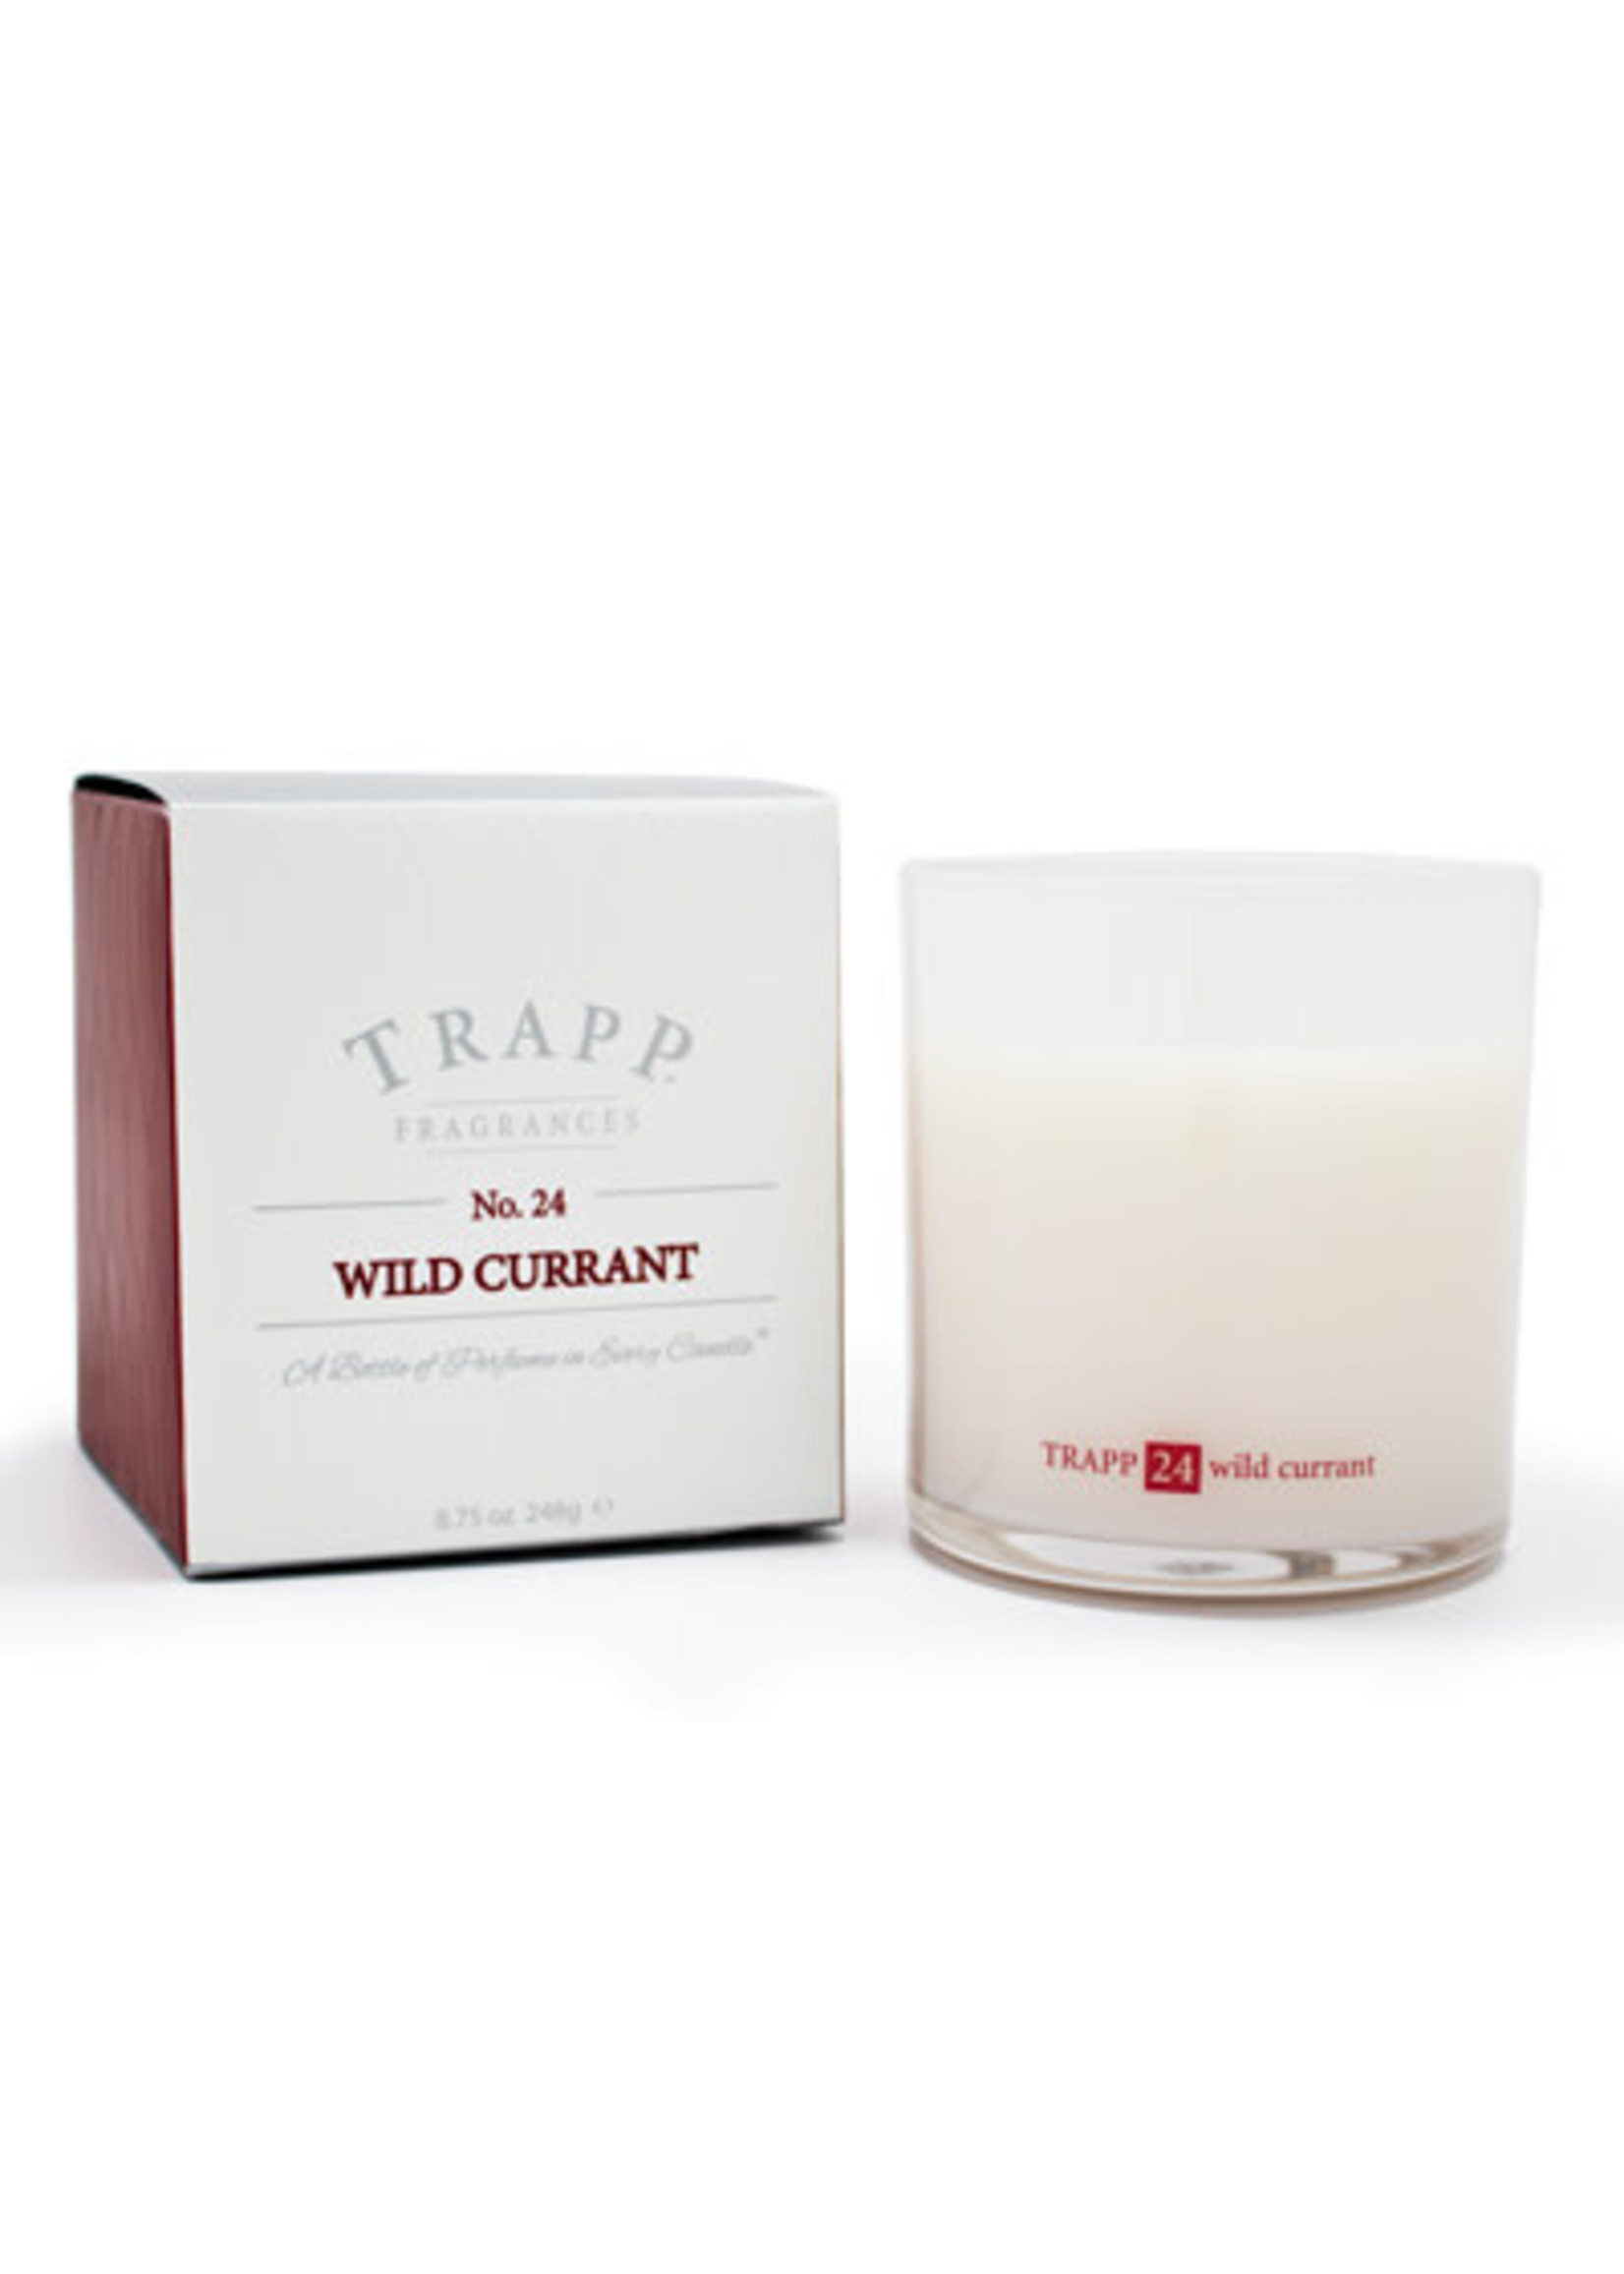 Trapp Candles Ambiance Collection - No. 24 Wild Currant - 8.75 oz. Poured Candle